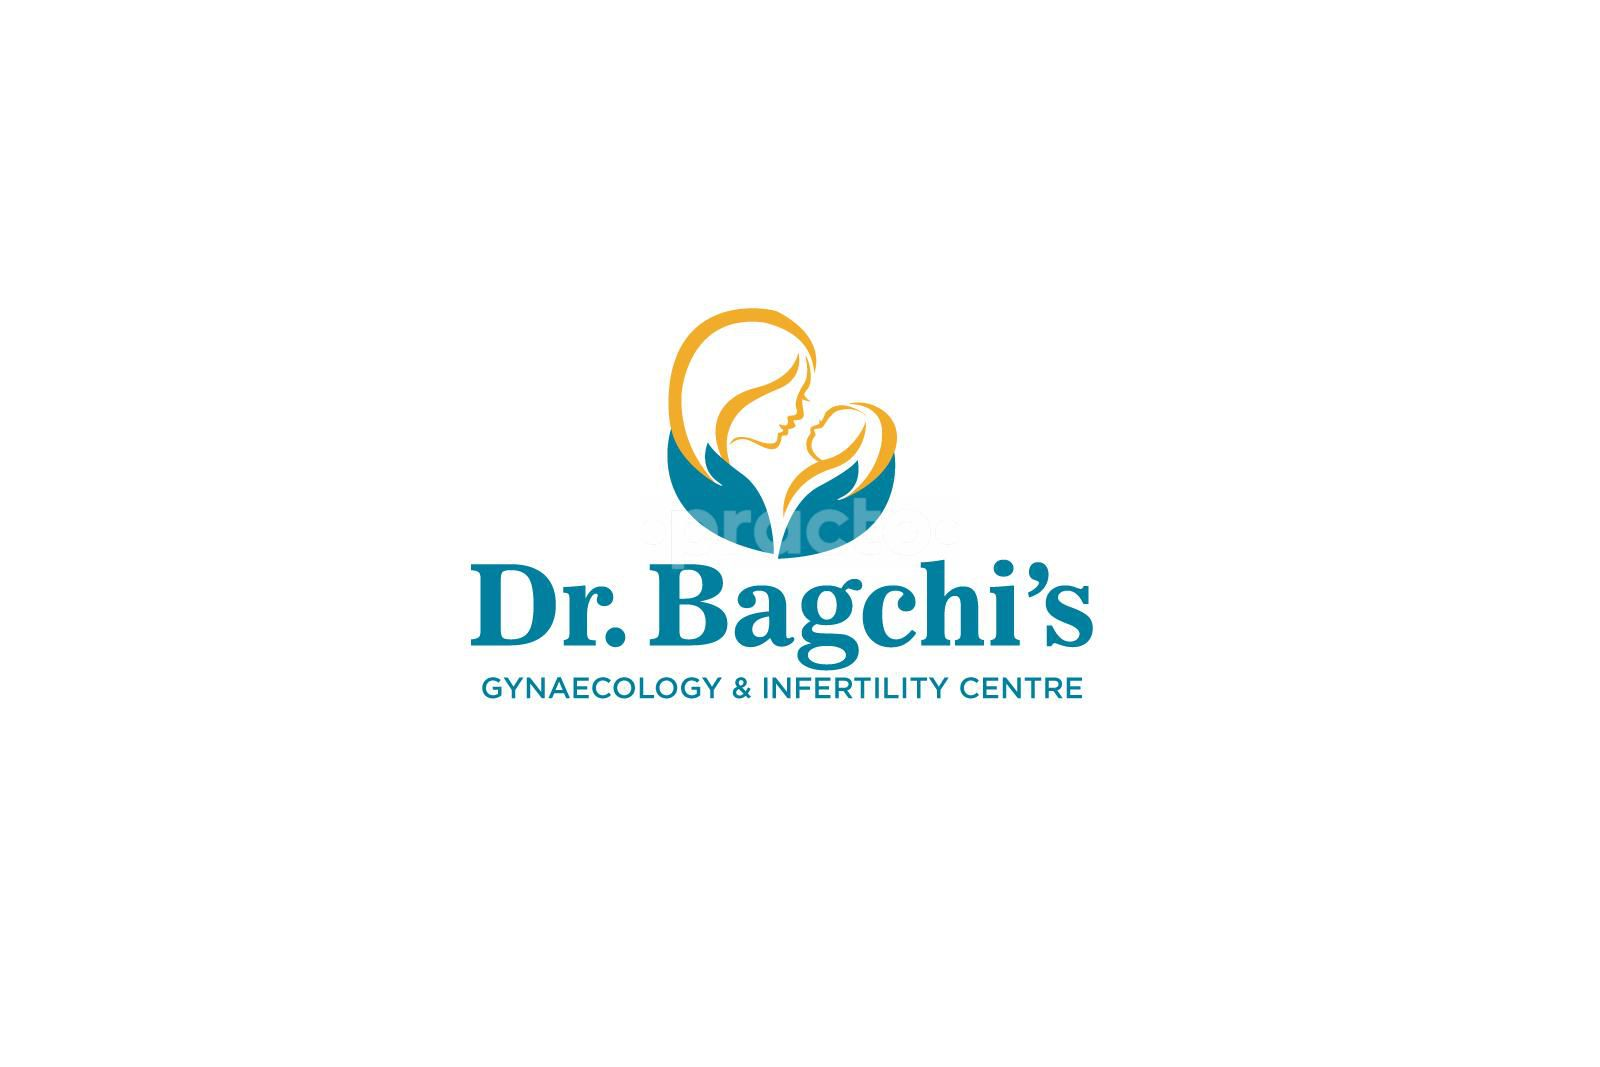 Dr. Bagchi Gynaecology and Infertility Centre display image